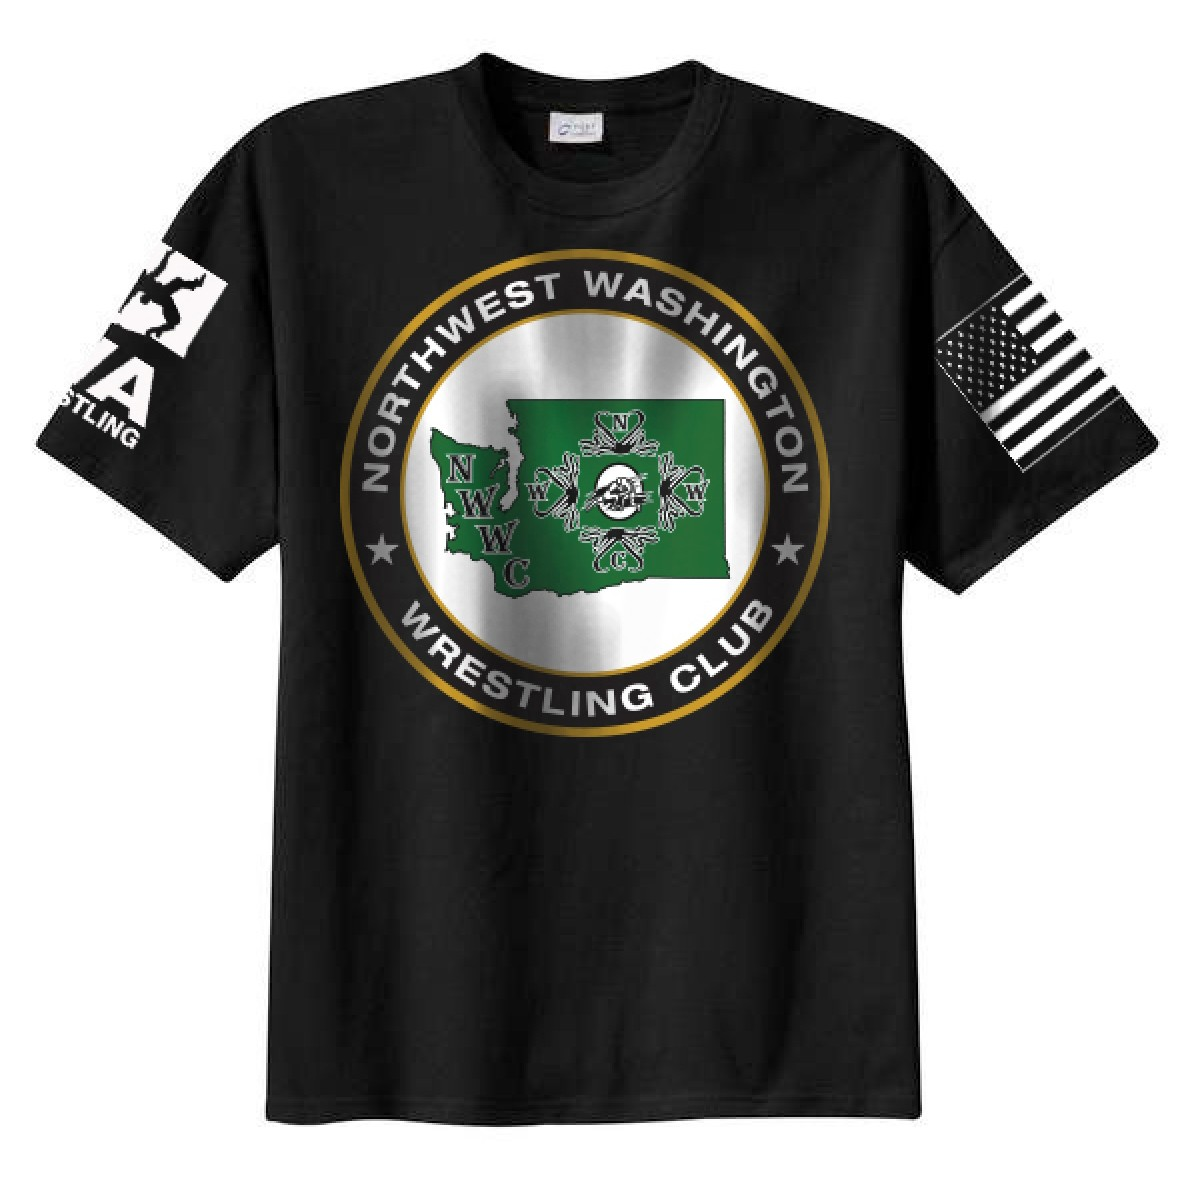 NWWC Black T-Shirt With Green Logo-Black-XL